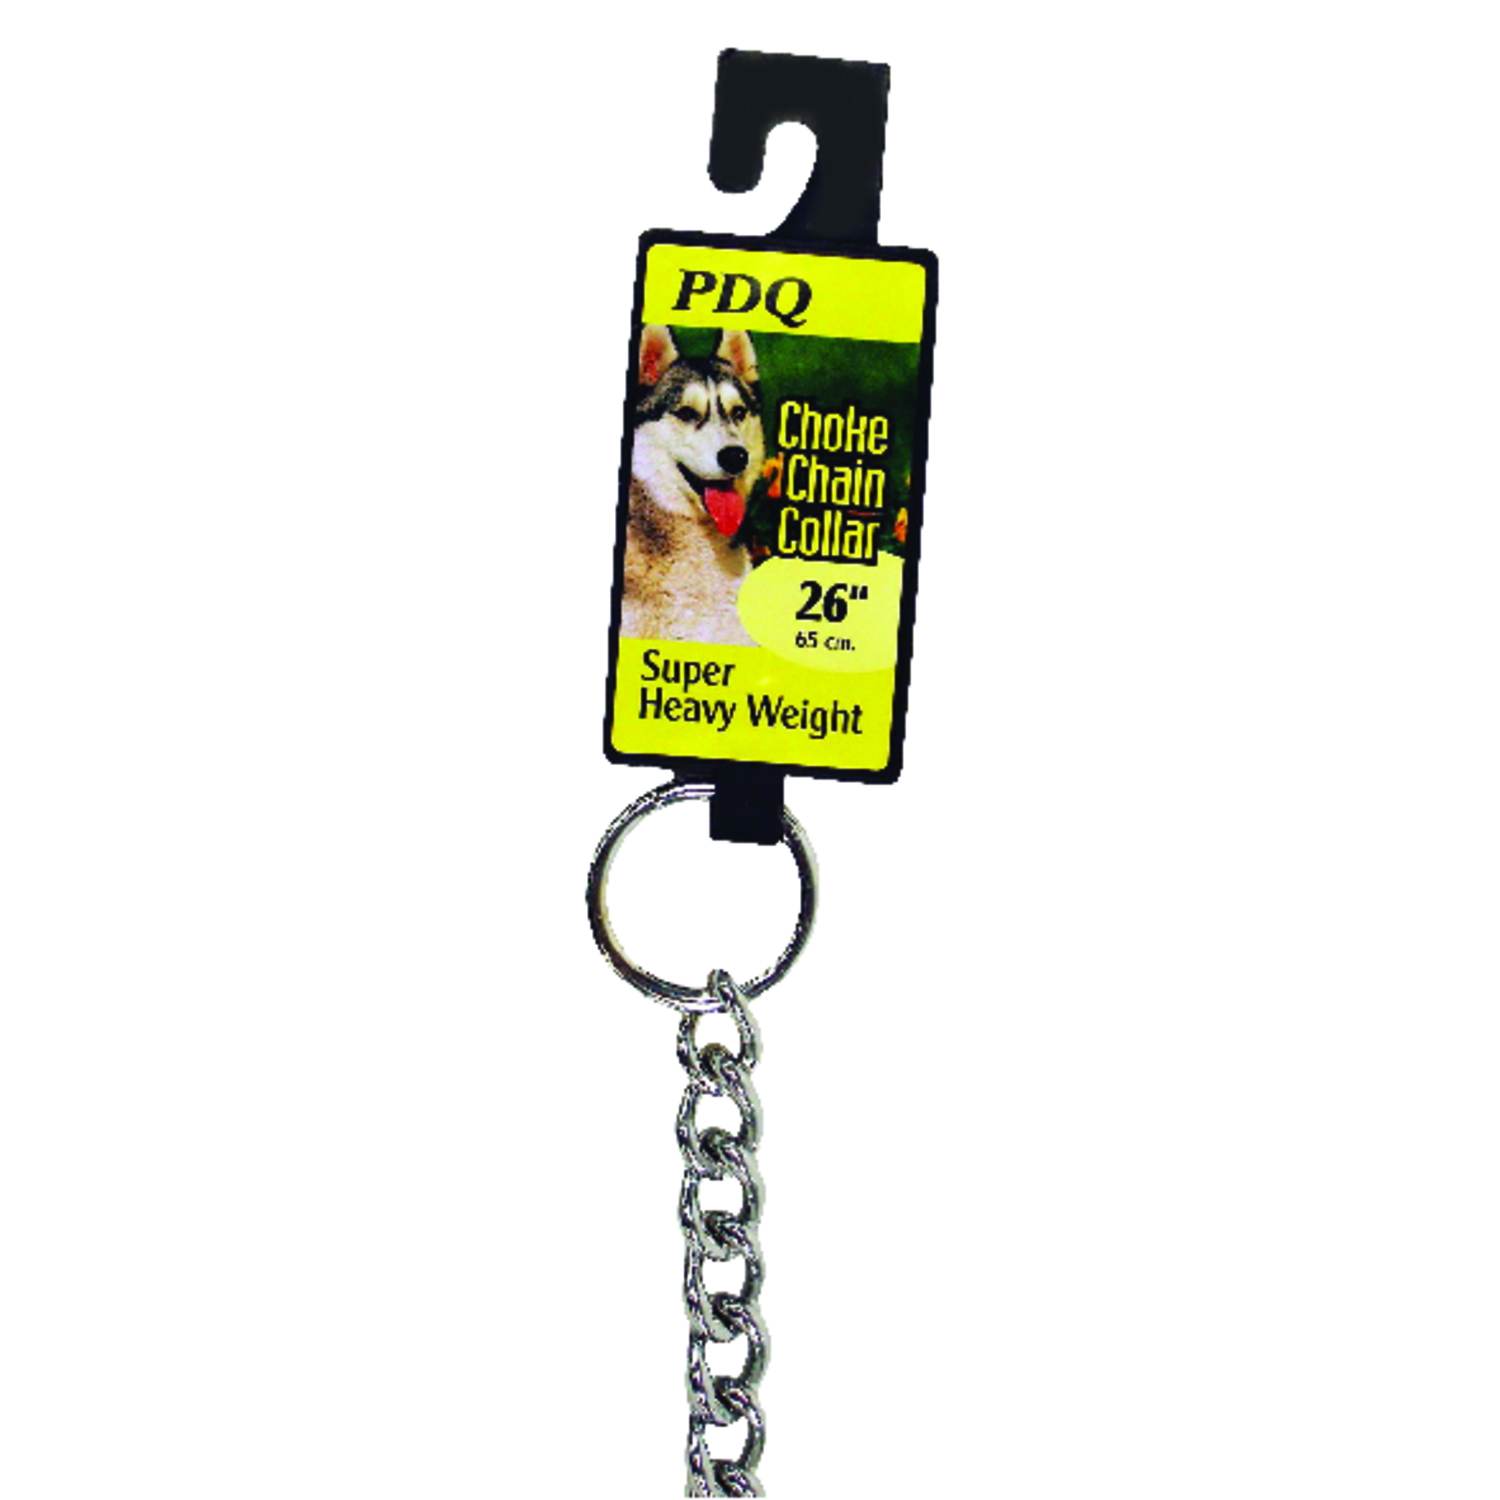 PDQ  Silver  Chain Collar  Steel  Dog  Choke Chain Collar  Large/X-Large